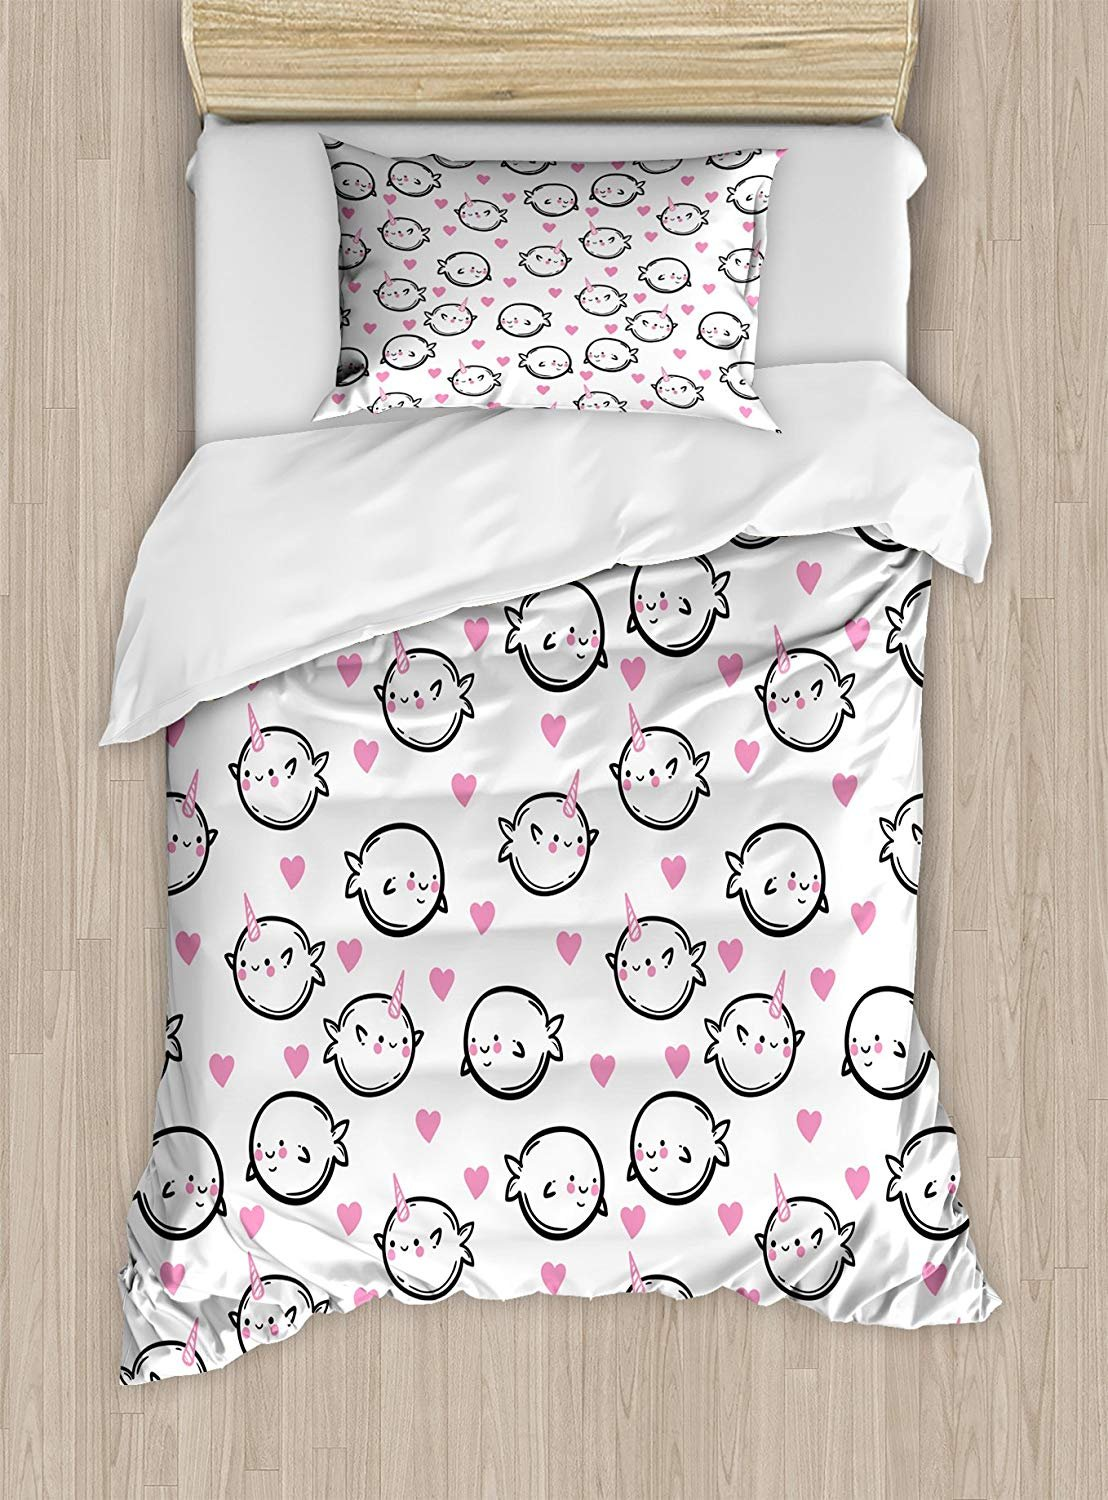 Twin XL Extra Long Bedding Set,Narwhal Duvet Cover Set,Heart Background Doodle Style Whales Sweet Ocean Mammals Childrens Cartoon,Cosy House Collection 4 Piece Bedding Setss